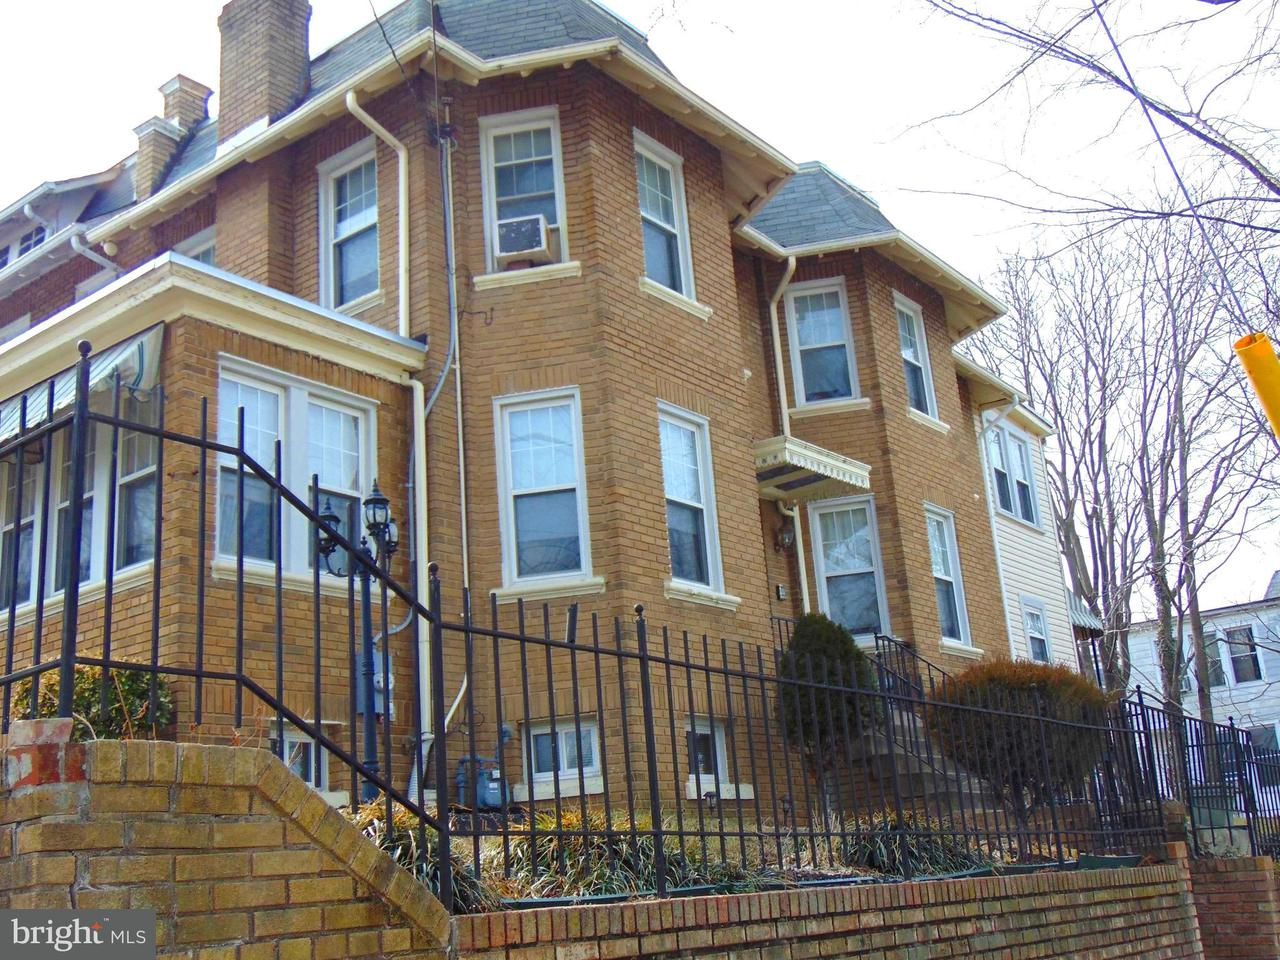 Townhouse for Sale at 700 Gallatin St Nw 700 Gallatin St Nw Washington, District Of Columbia 20011 United States